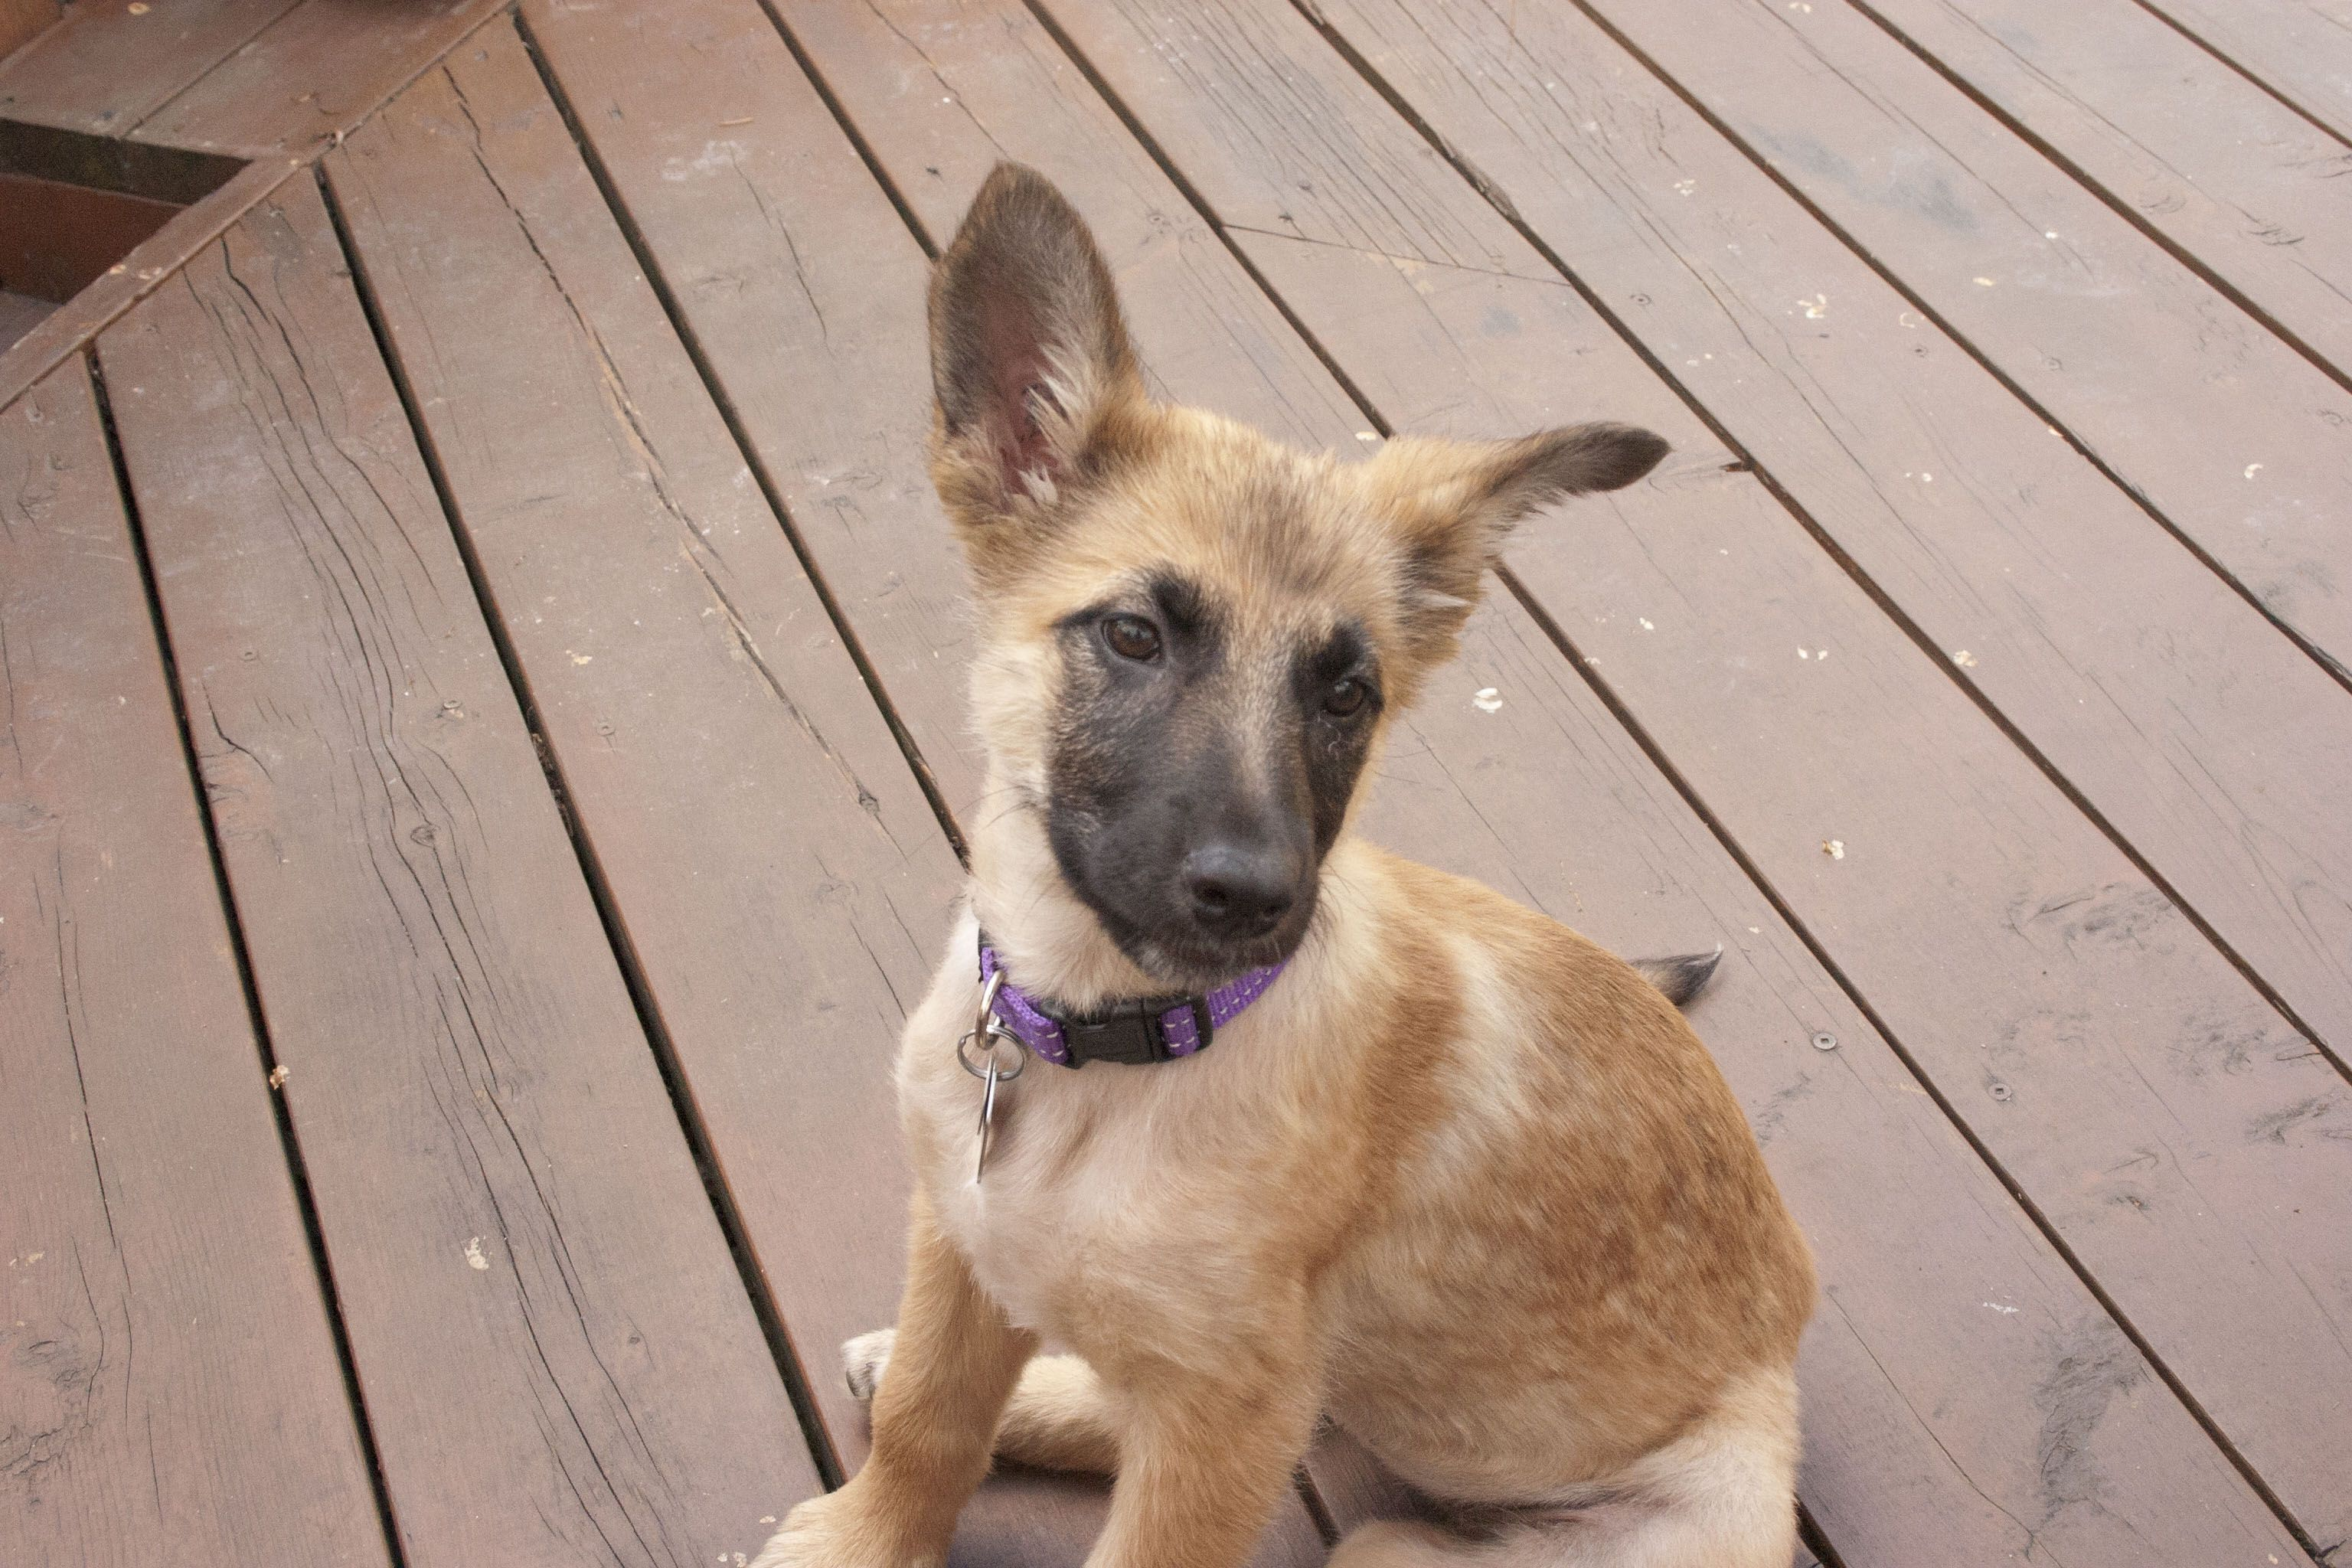 Belgium Malinois 3 Months Old Re Pin If You Love Smart Cute